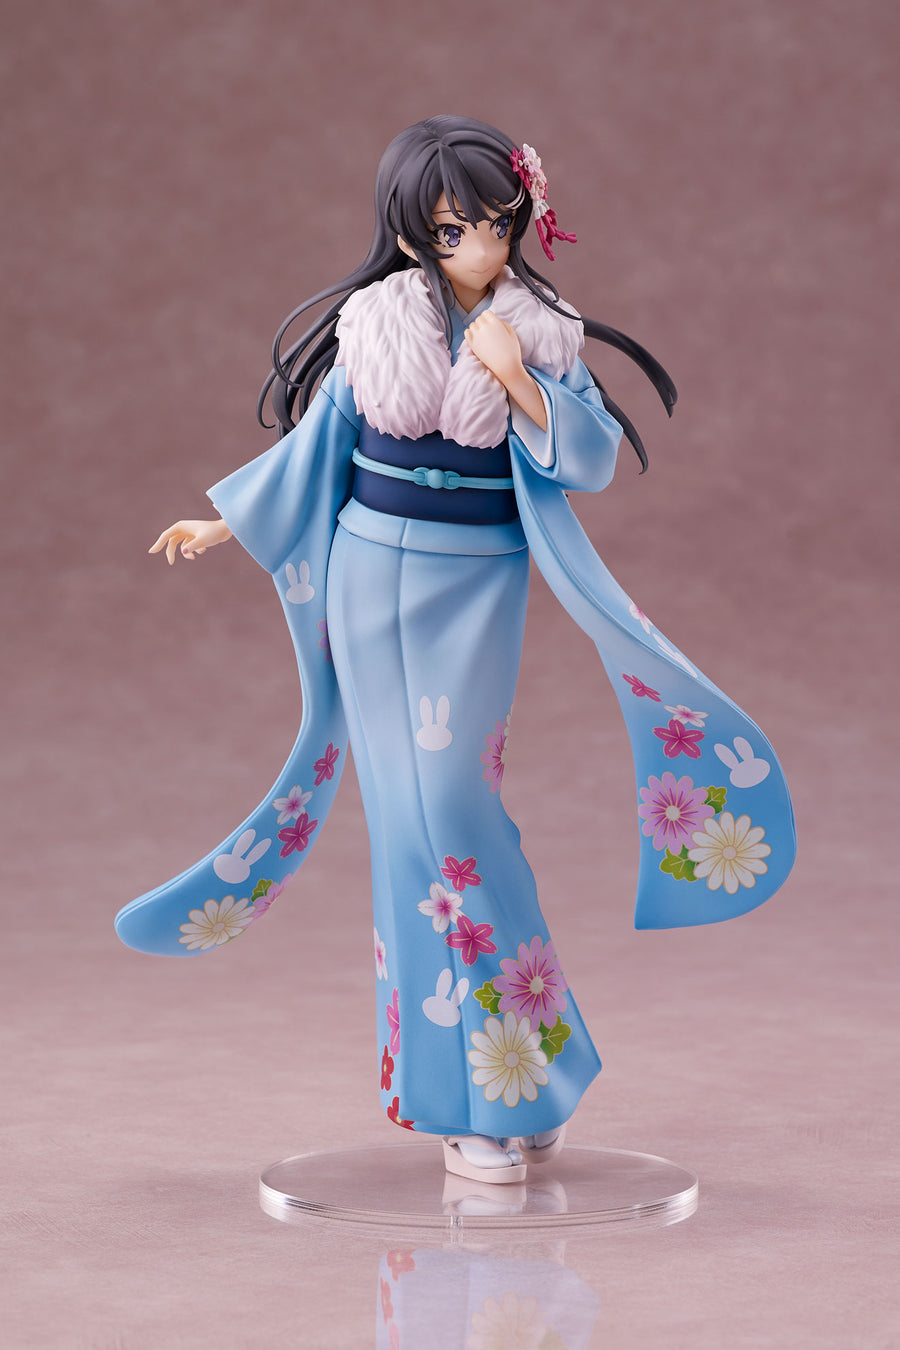 Rascal Does Not Dream of Bunny Girl Senpai - MAI SAKURAJIMA Kimono Ver. Figurine - 1/7th Scale Figure